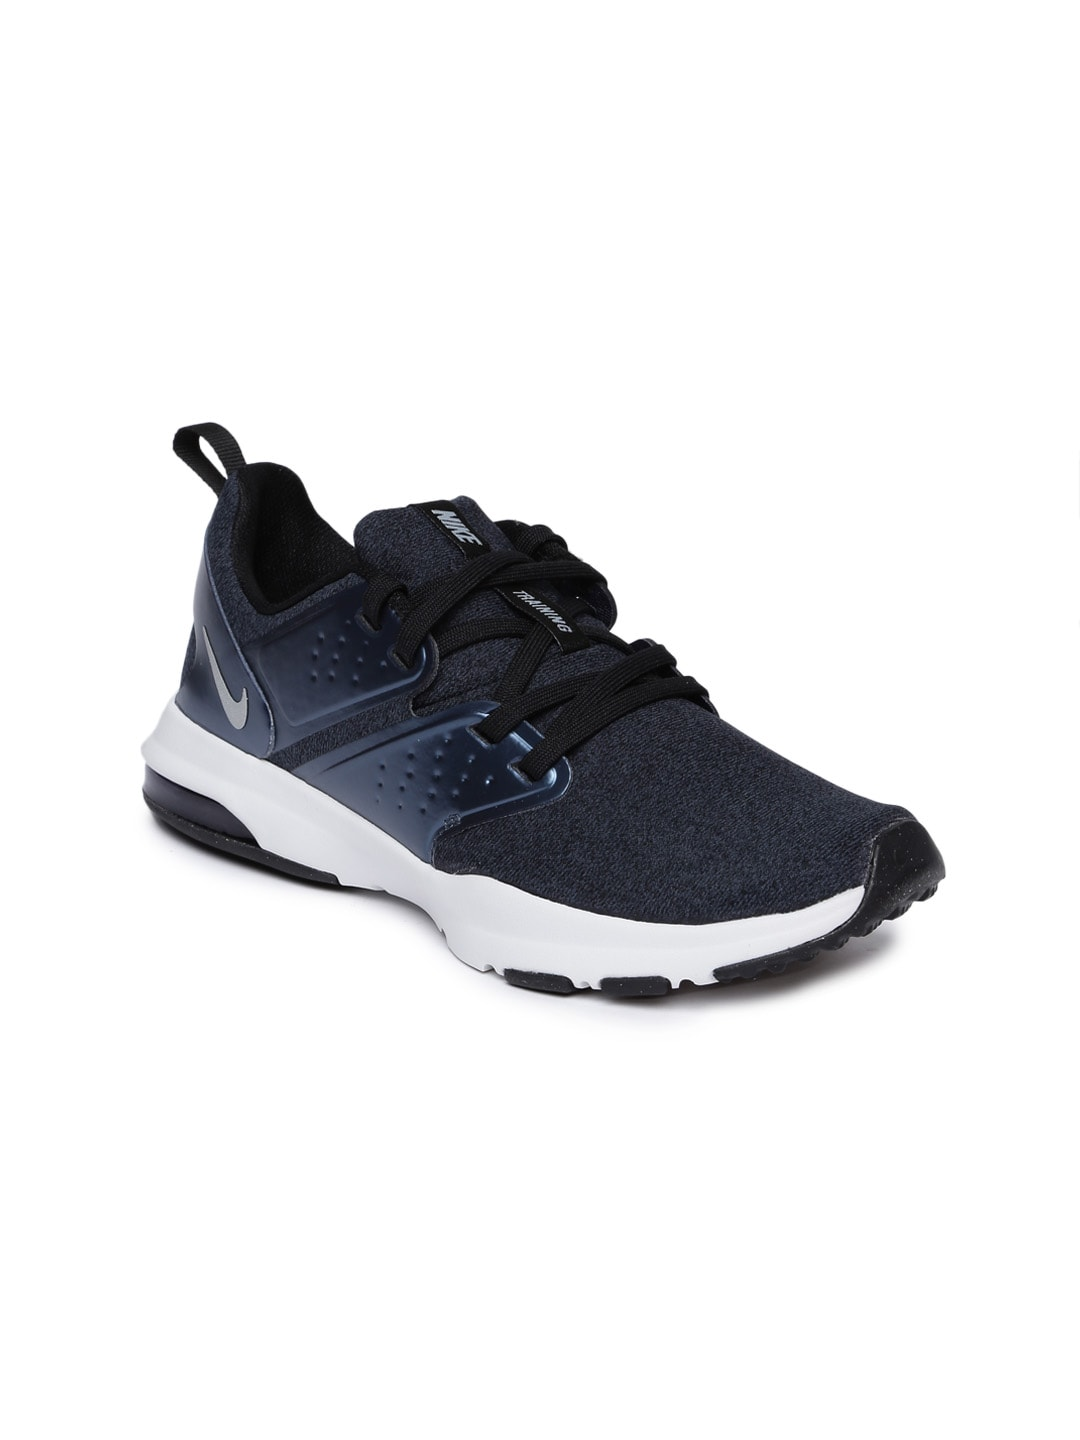 ebc416d307e Nike Training Shoes - Buy Nike Training Shoes For Men   Women in India